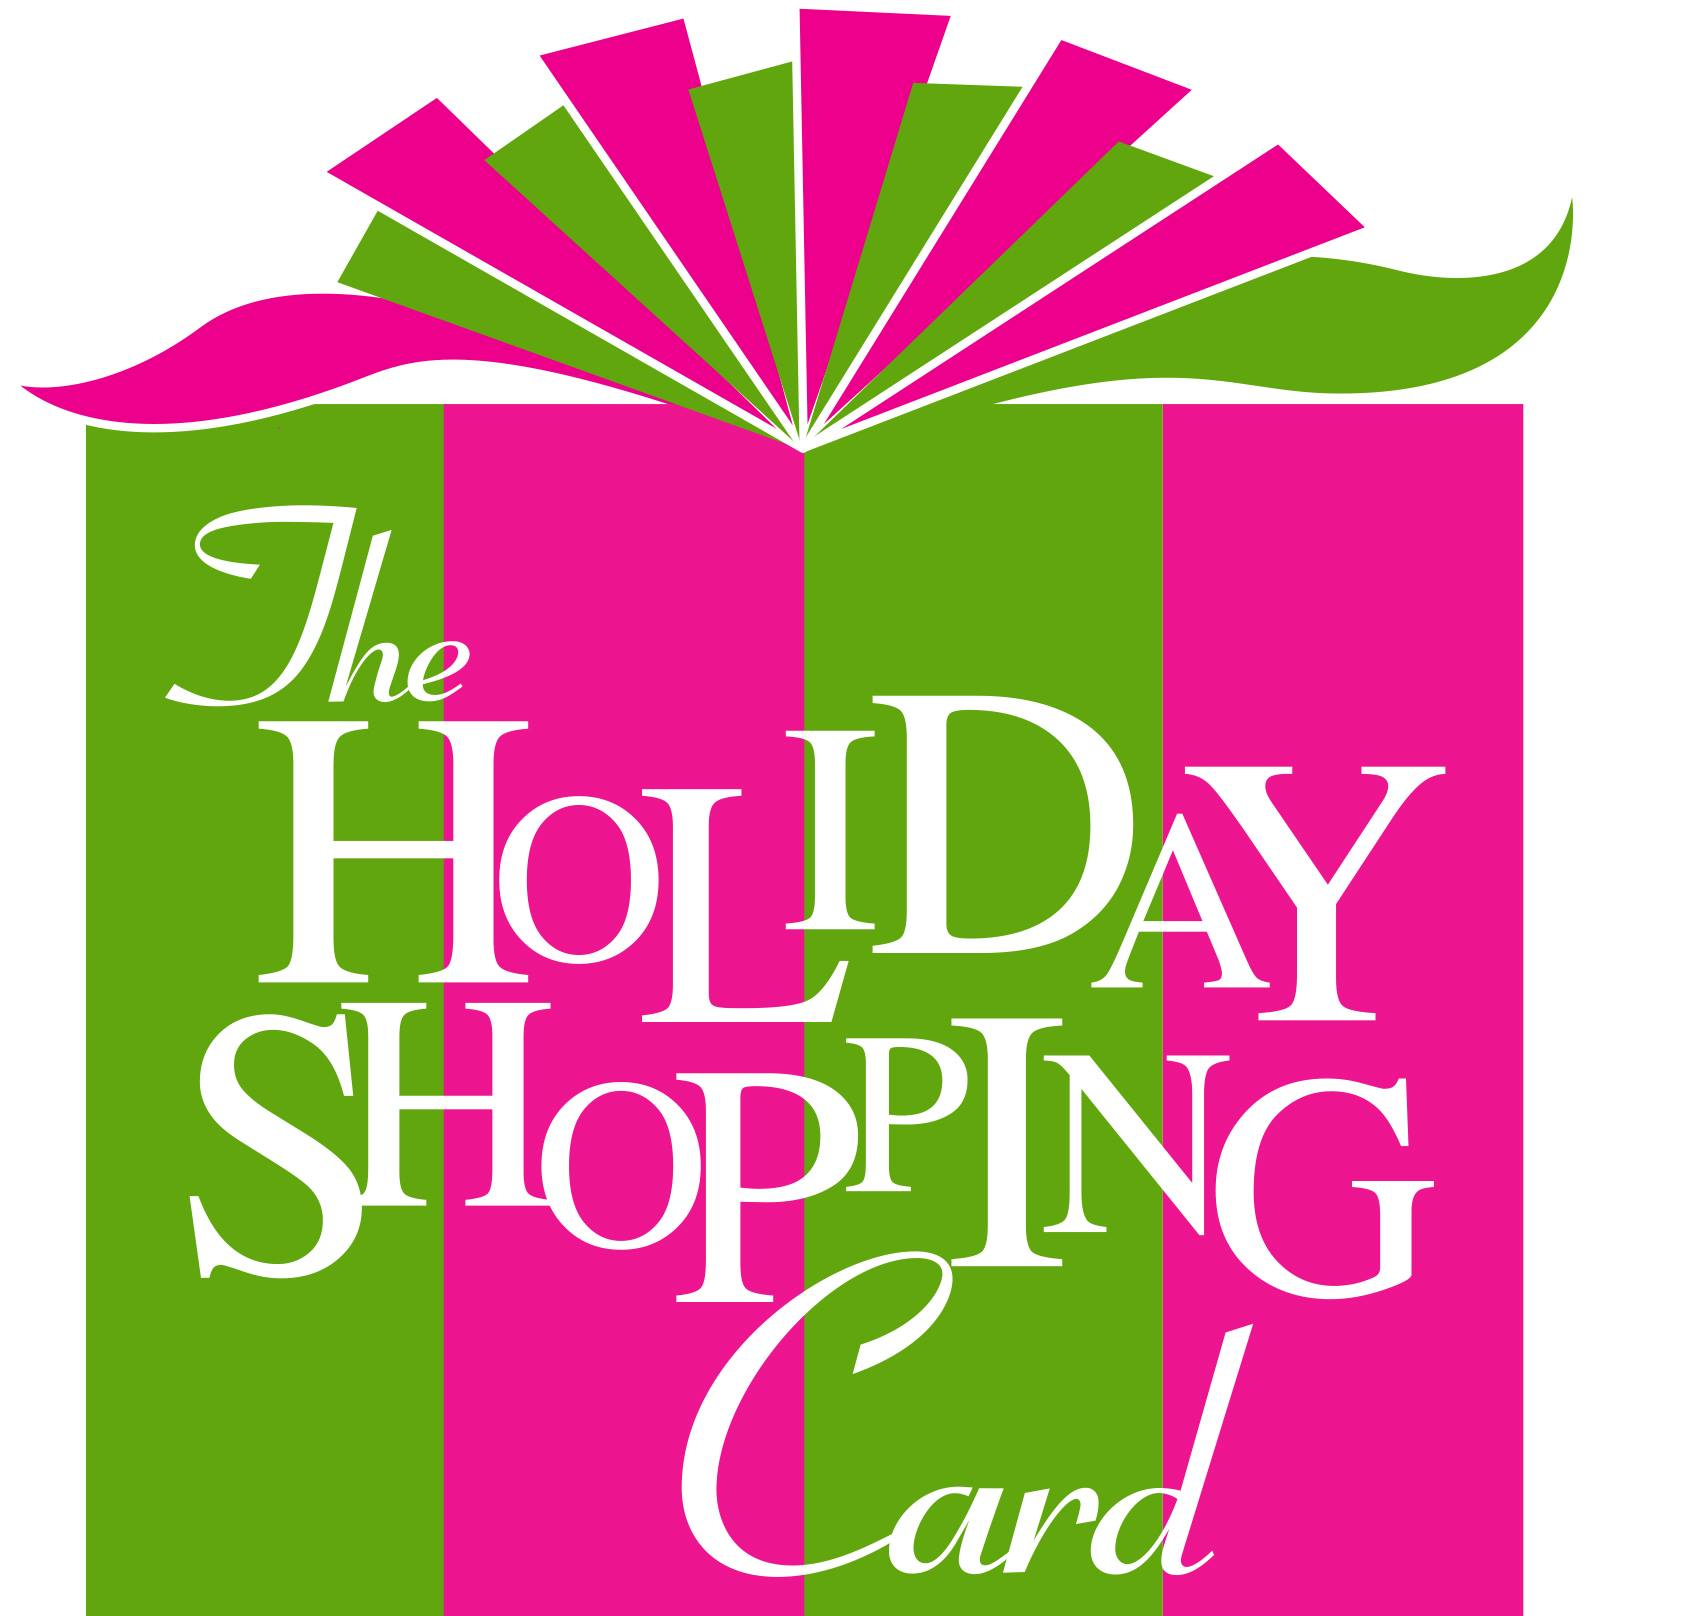 Shop 'Til You Drop with the Holiday Shopping Card